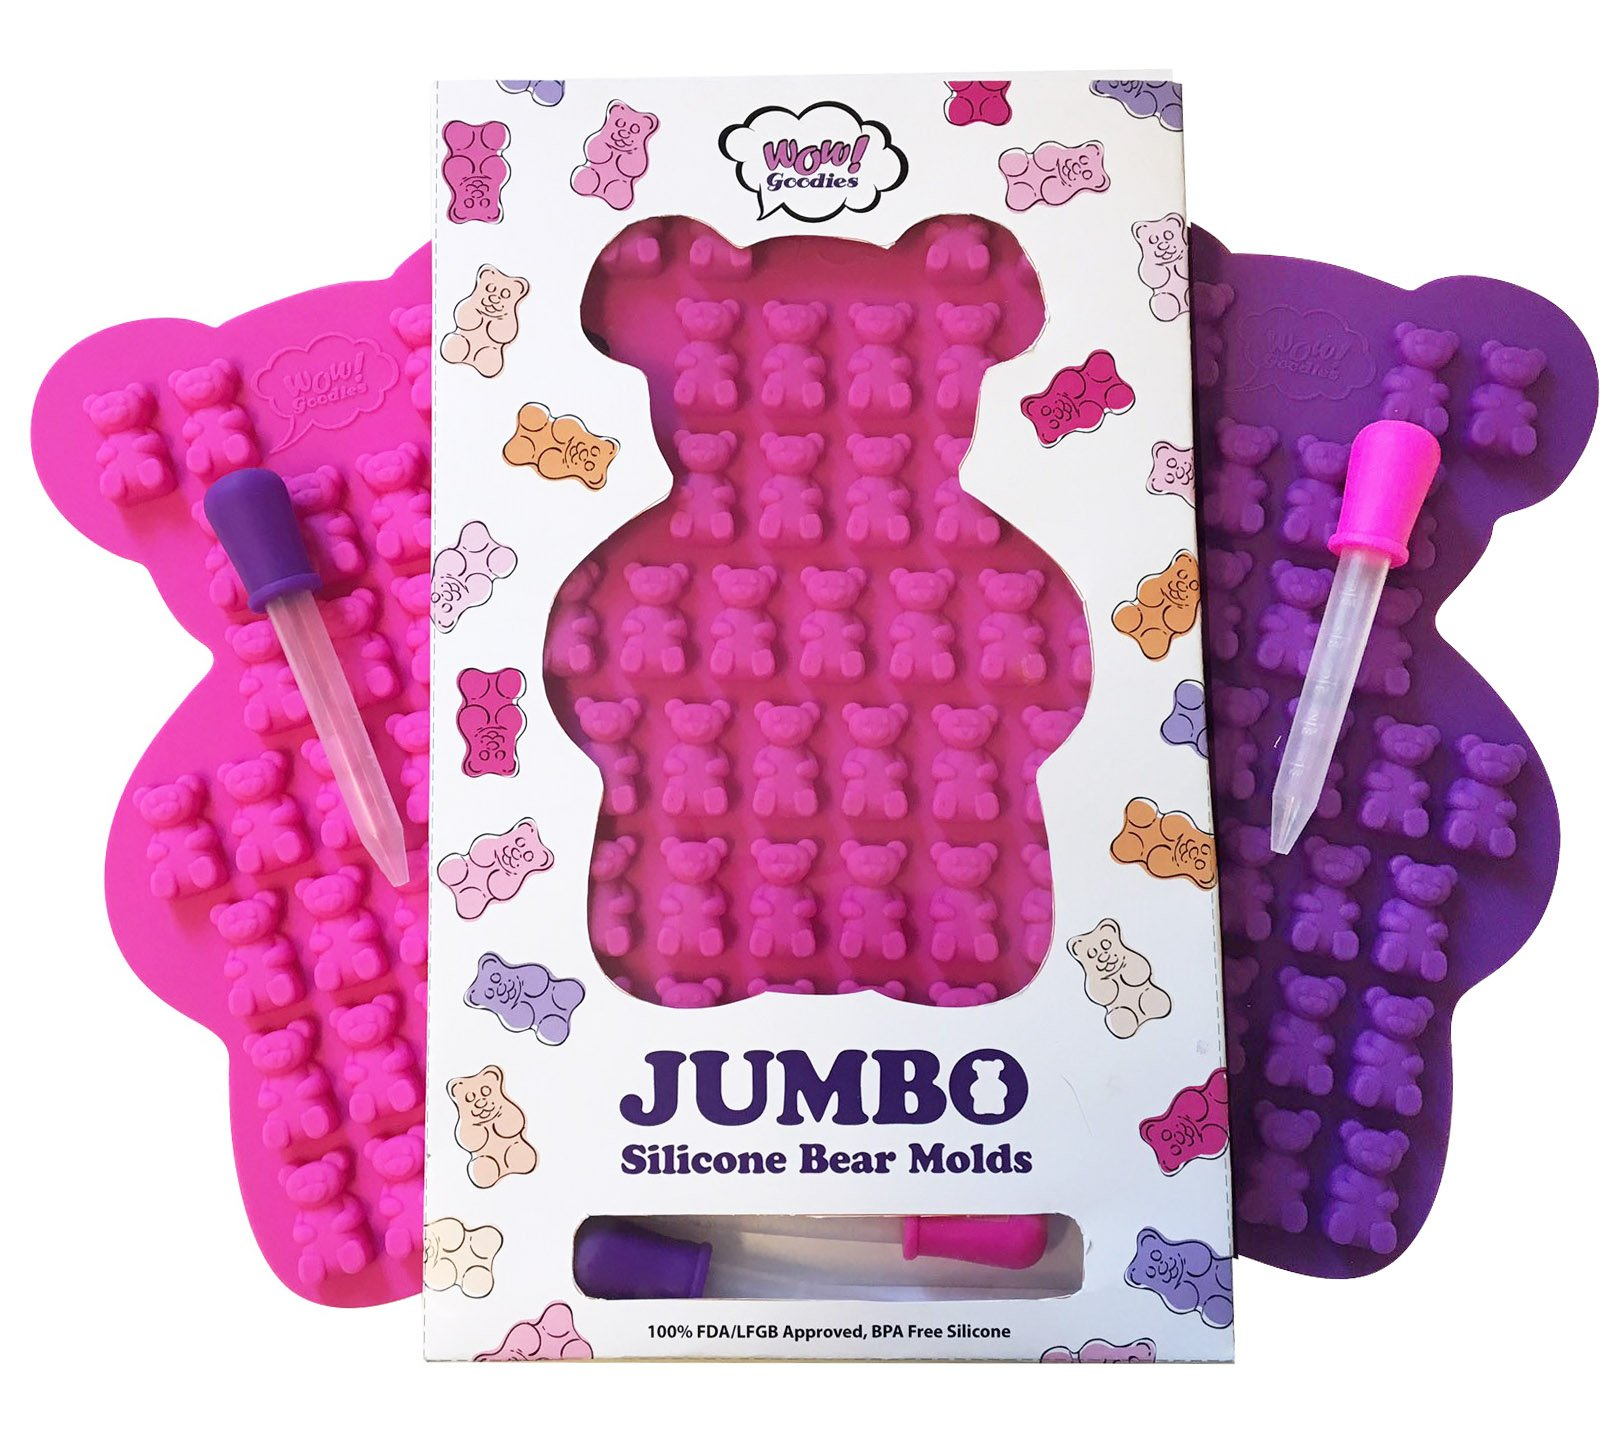 NEW UNIQUE Extra Large Candy Gummy Bear Mold - 2 Big Molds + 2 BONUS Droppers - BPA Free FDA Approved Silicone - Make Bigger 1.2'' Incredibly Detailed HEALTHY Gelatin Gummie Bears No Kid Could Resist